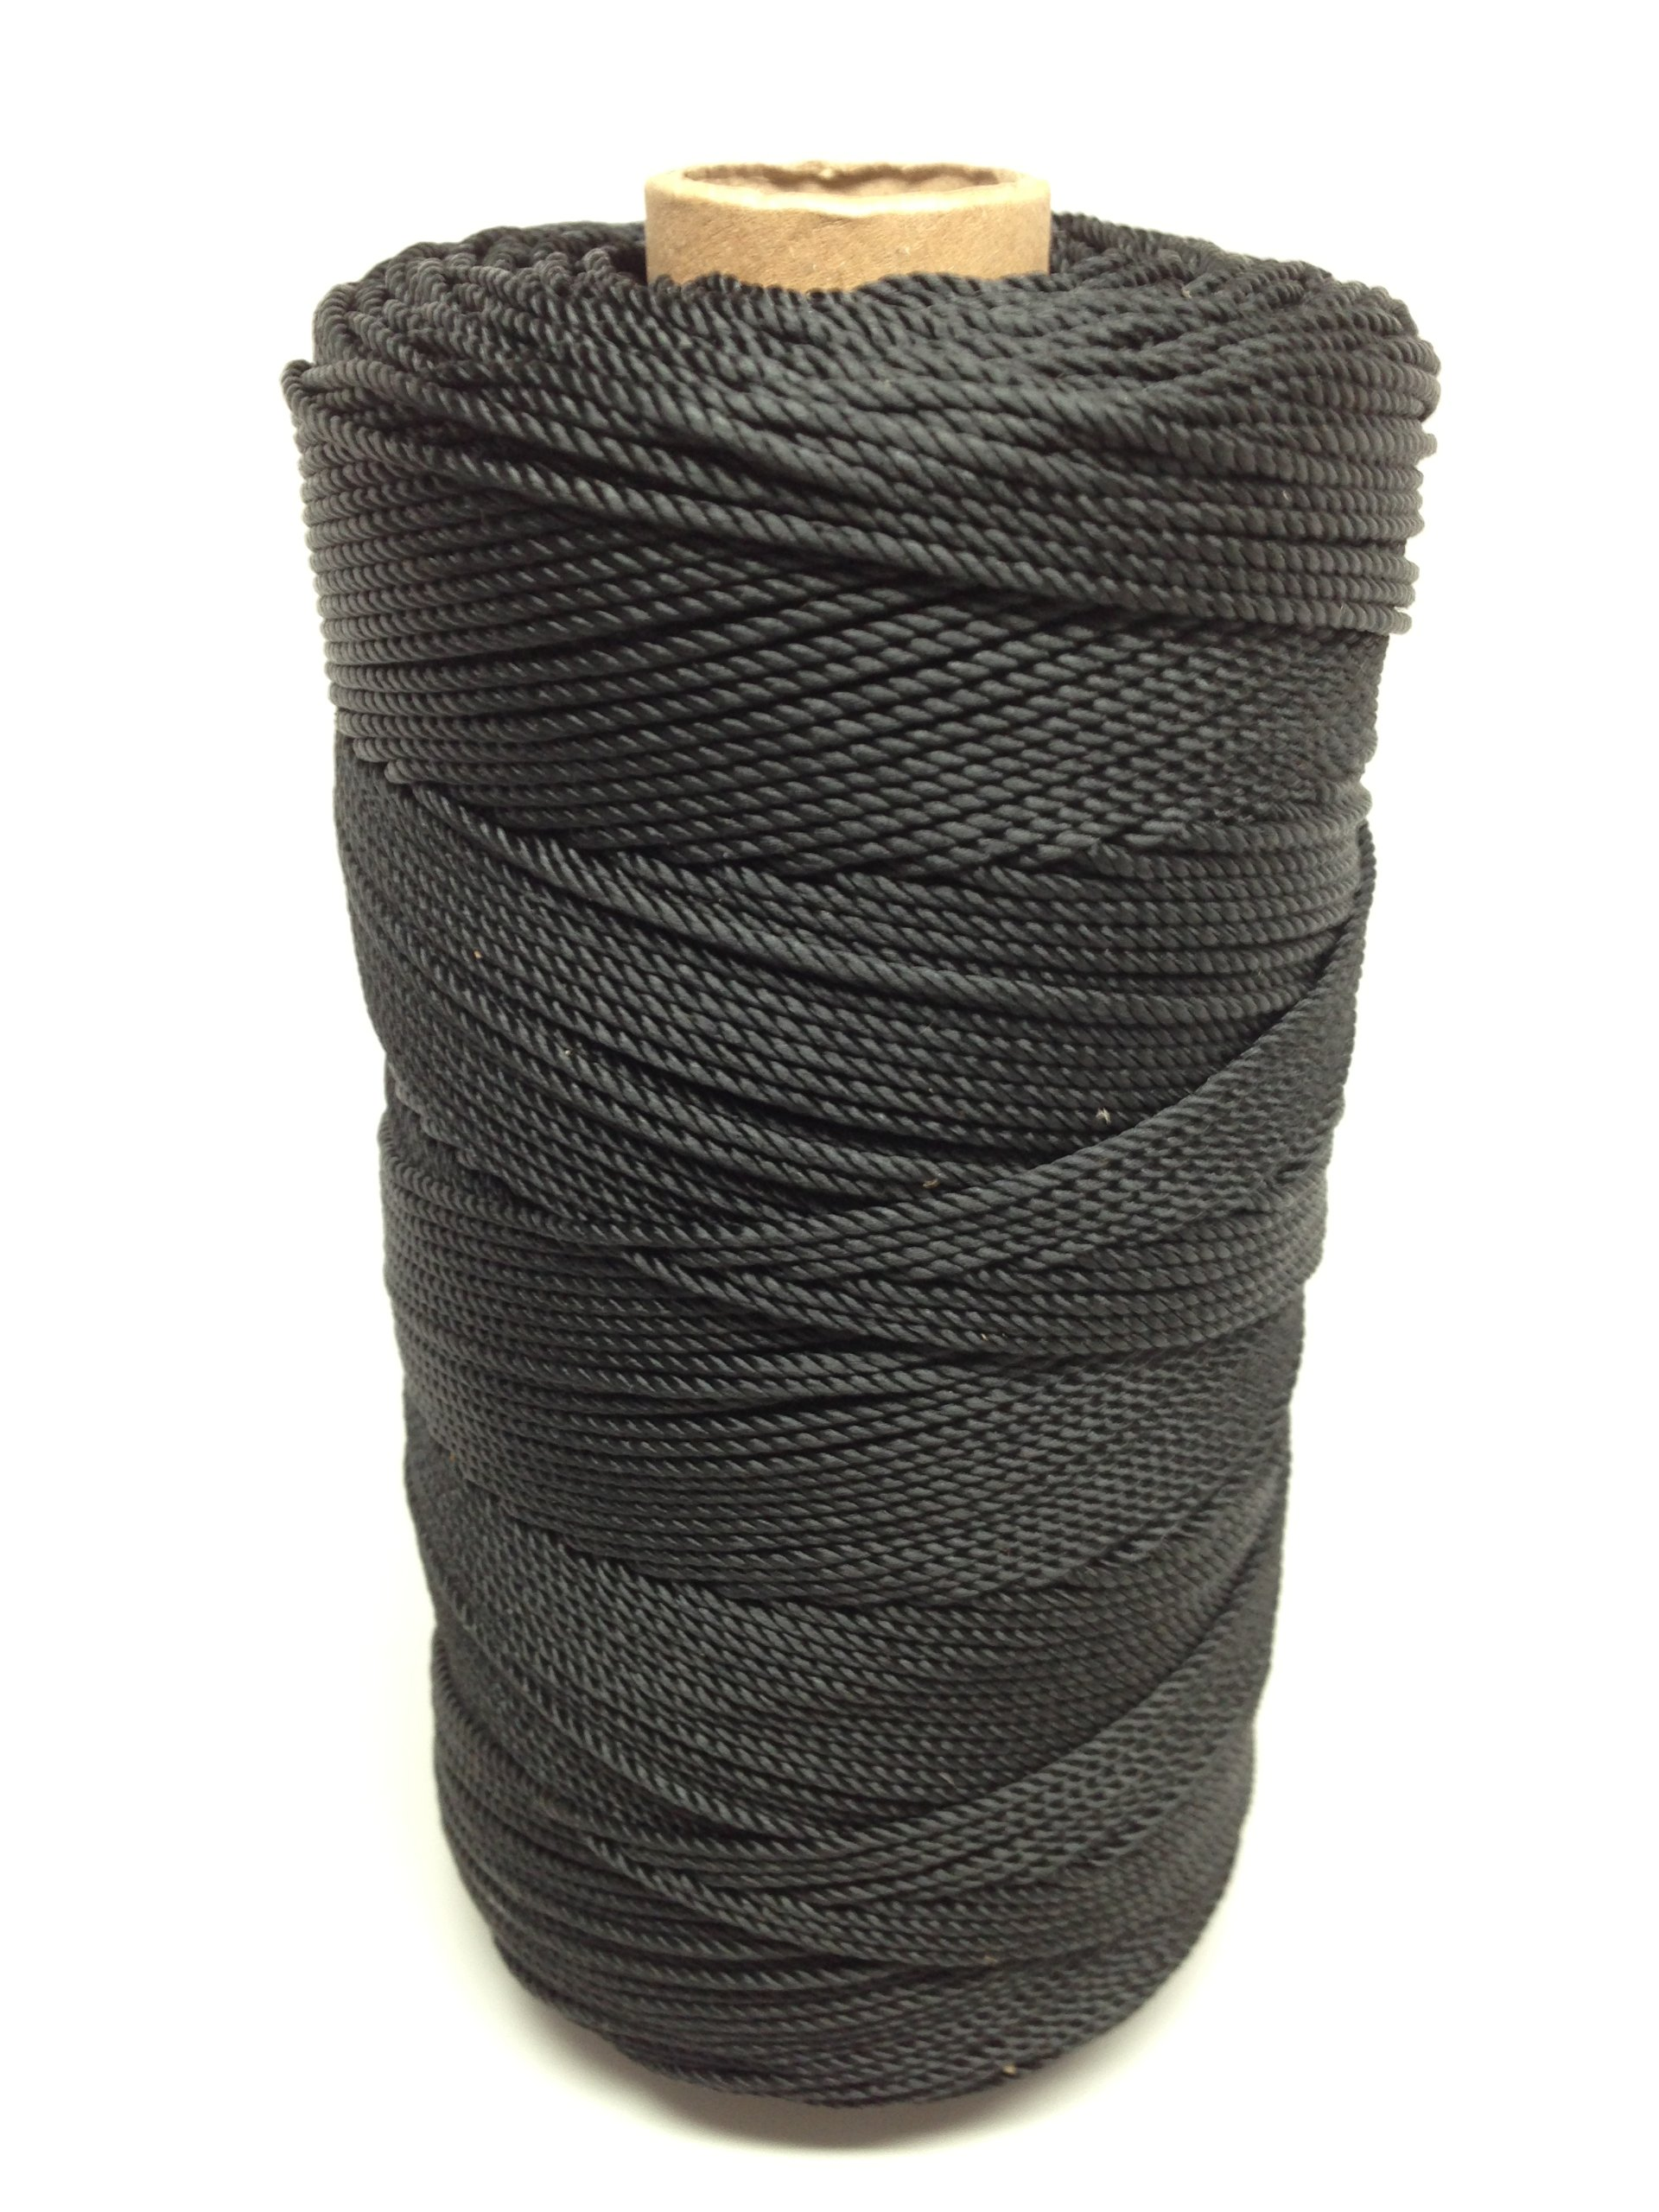 SGT KNOTS Tarred Twine #18 Durable Bank Line - 1 Pound - Moisture, UV, Abrasions Resistant - for Gear Bundles, Crafting, Tie-Down, Home Improvement, Landscaping, Construction (1000 feet) by SGT KNOTS